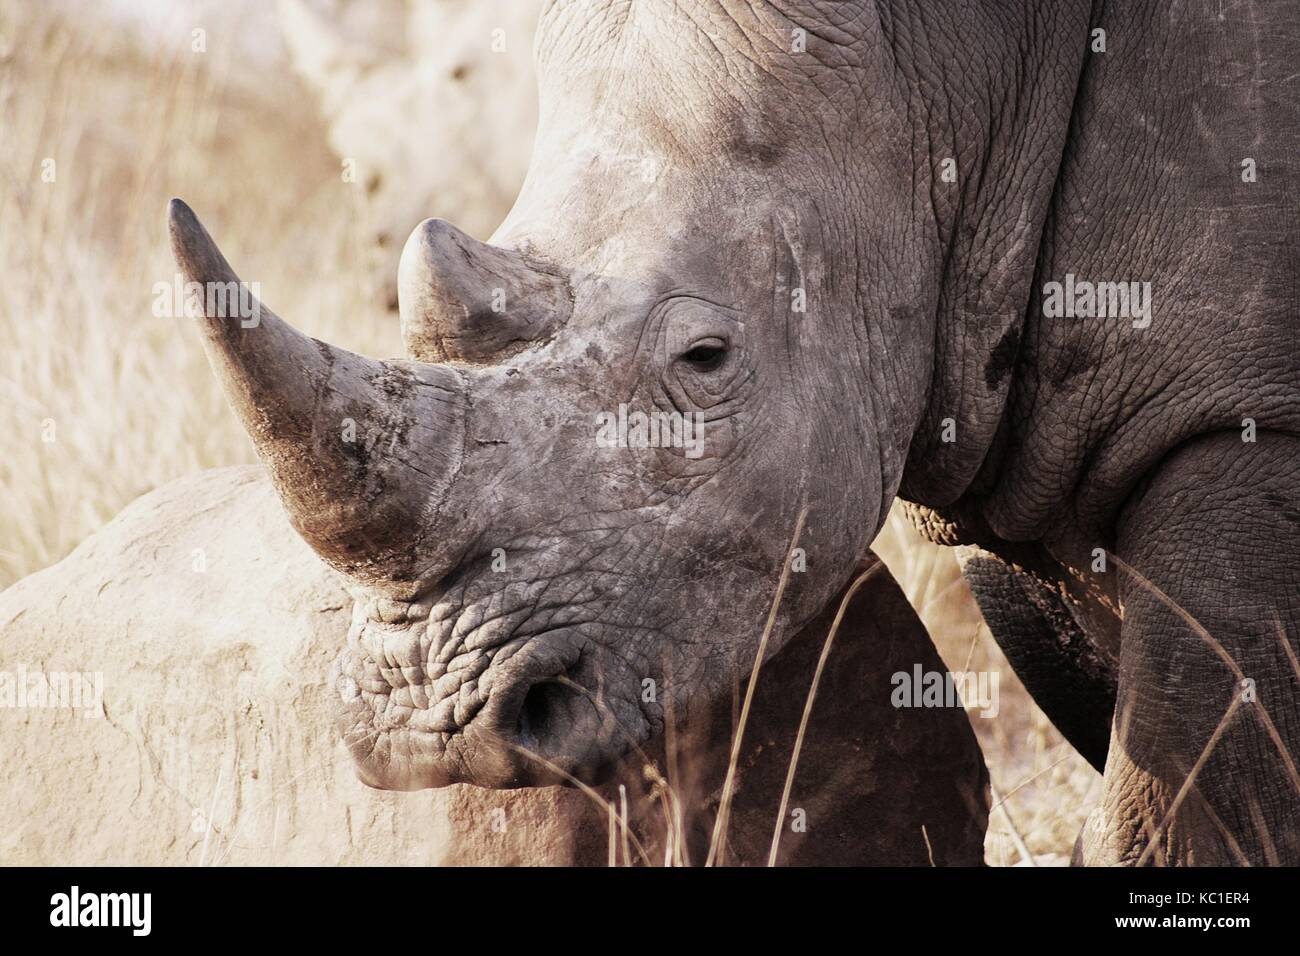 White Rhino resting its head on a rock in the Kruger National Park, South Africa - Stock Image